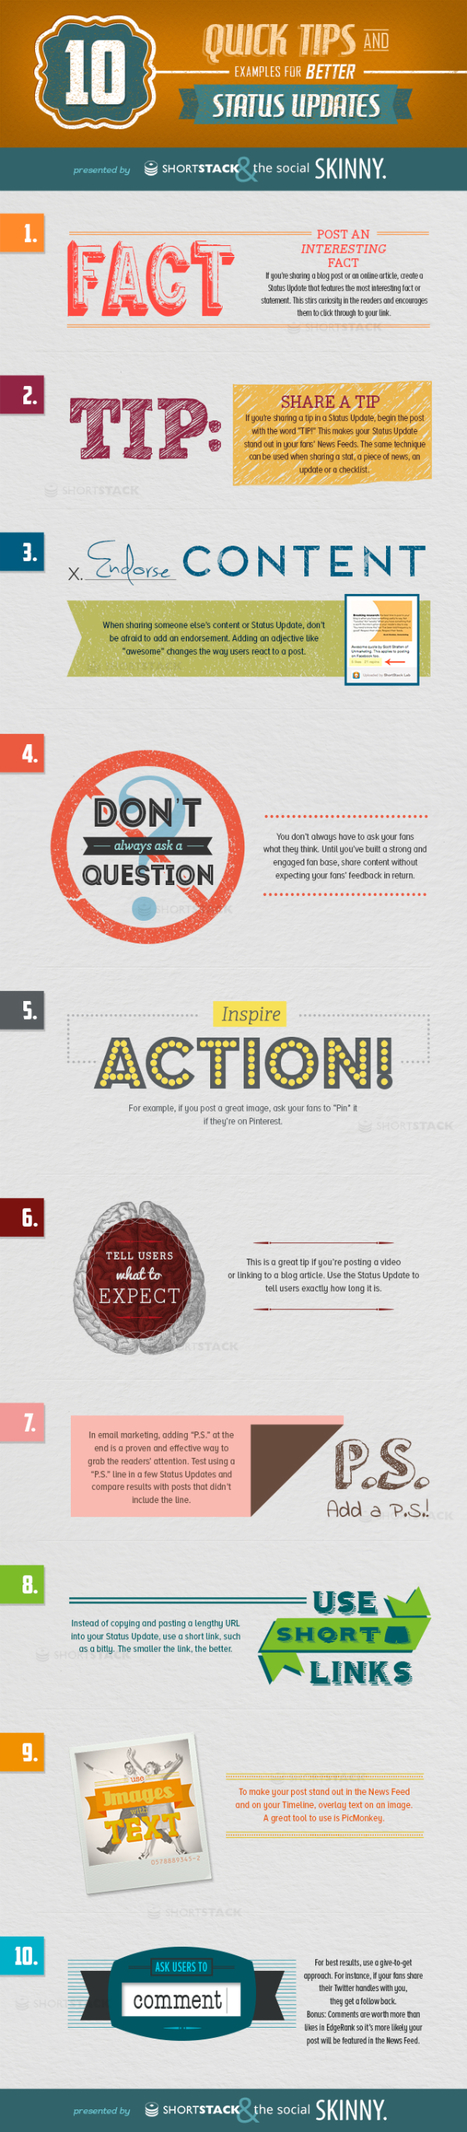 10 Quick Tips for Better Status Updates (Infographic) | The Social Skinny | The Social Touch | Scoop.it